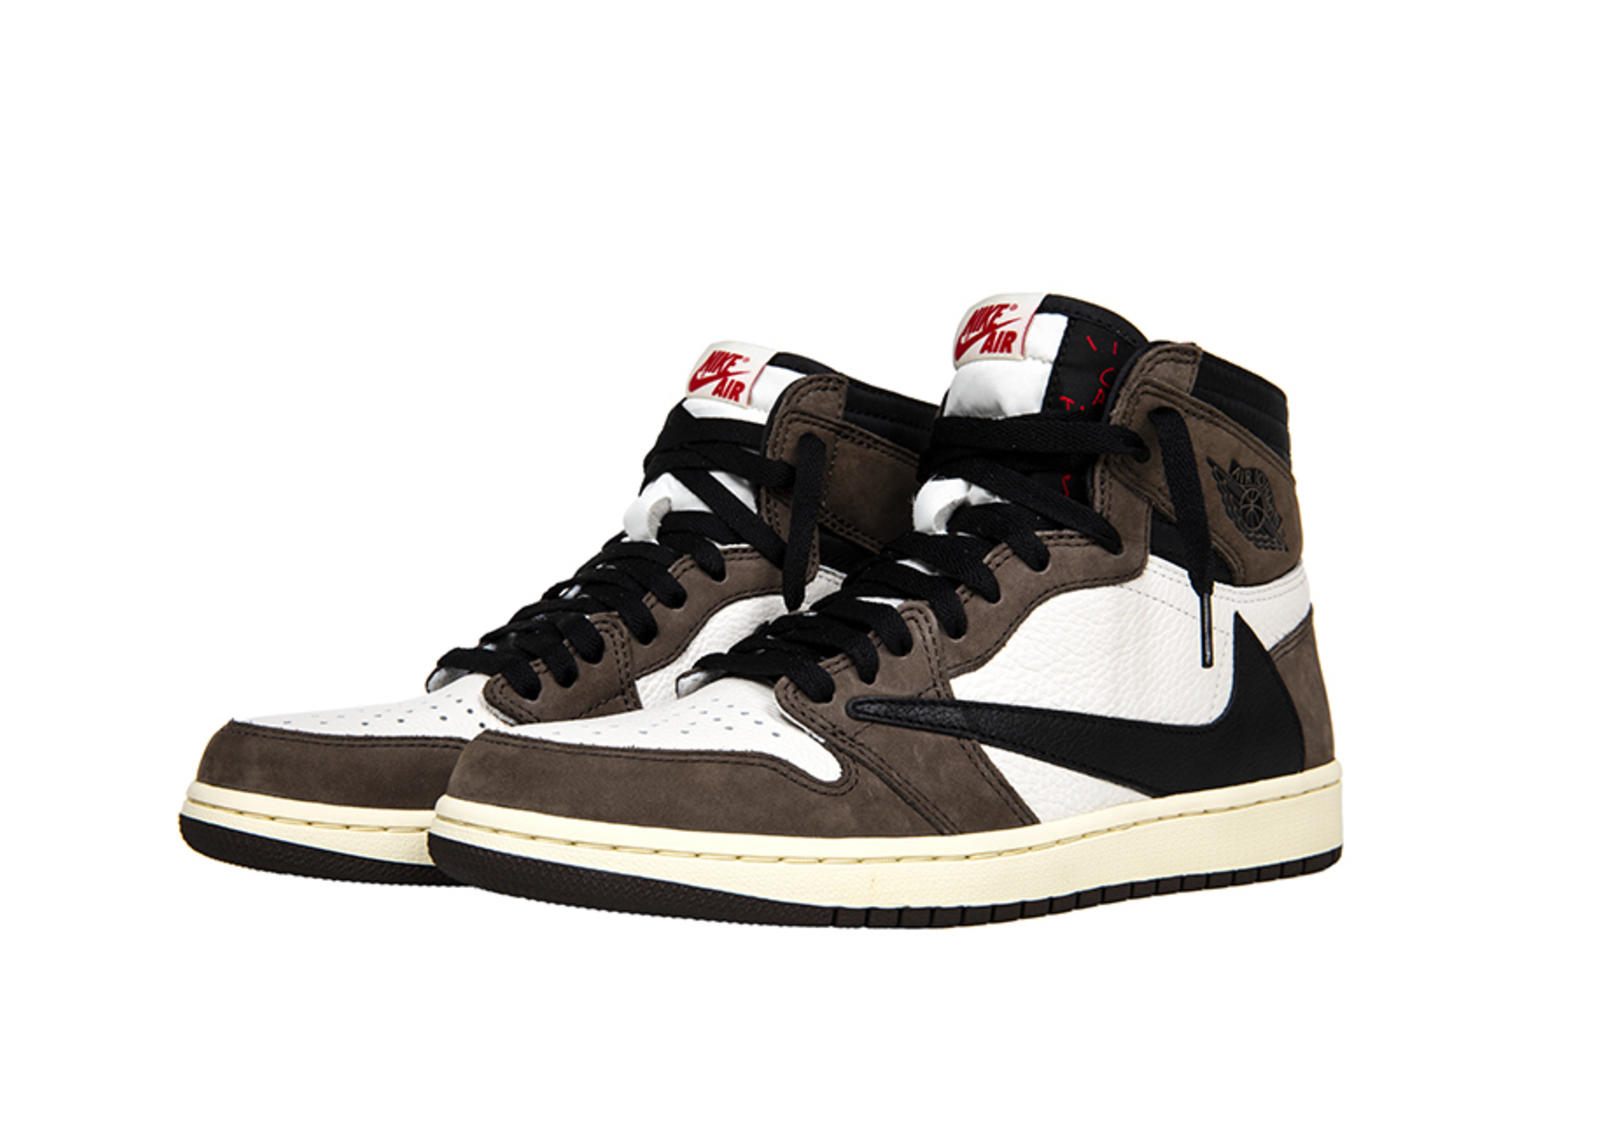 882a38eacac5 Travis Scott Air Jordan I High OG and Apparel Collection Official Images  and Release Date 23